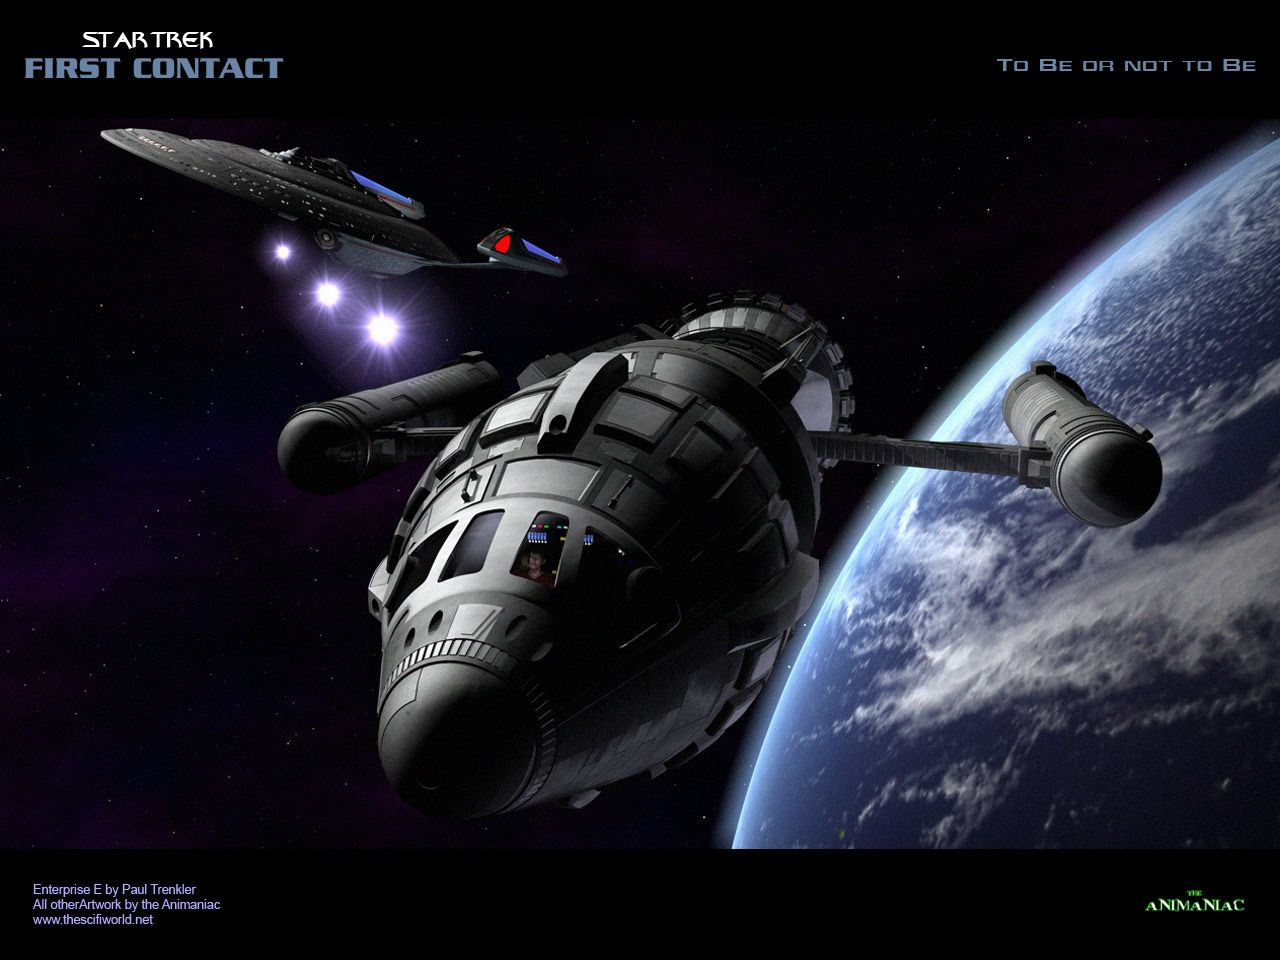 Download Star Trek Movies wallpaper, 'Star Trek First